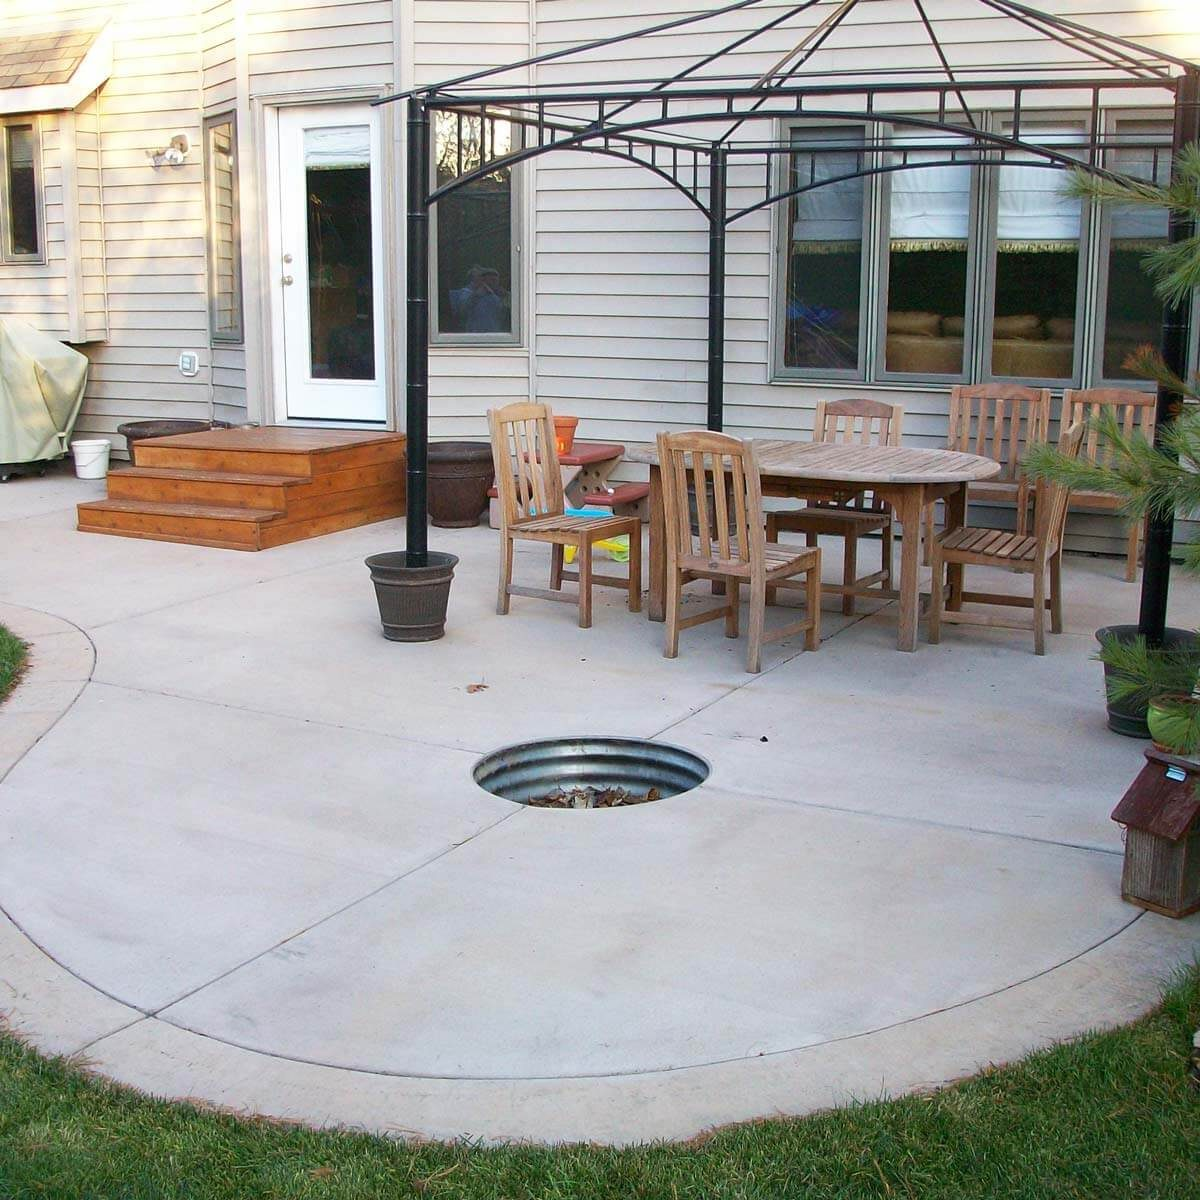 Back Yard Patio Ideas: 15 Perfect Patio Designs